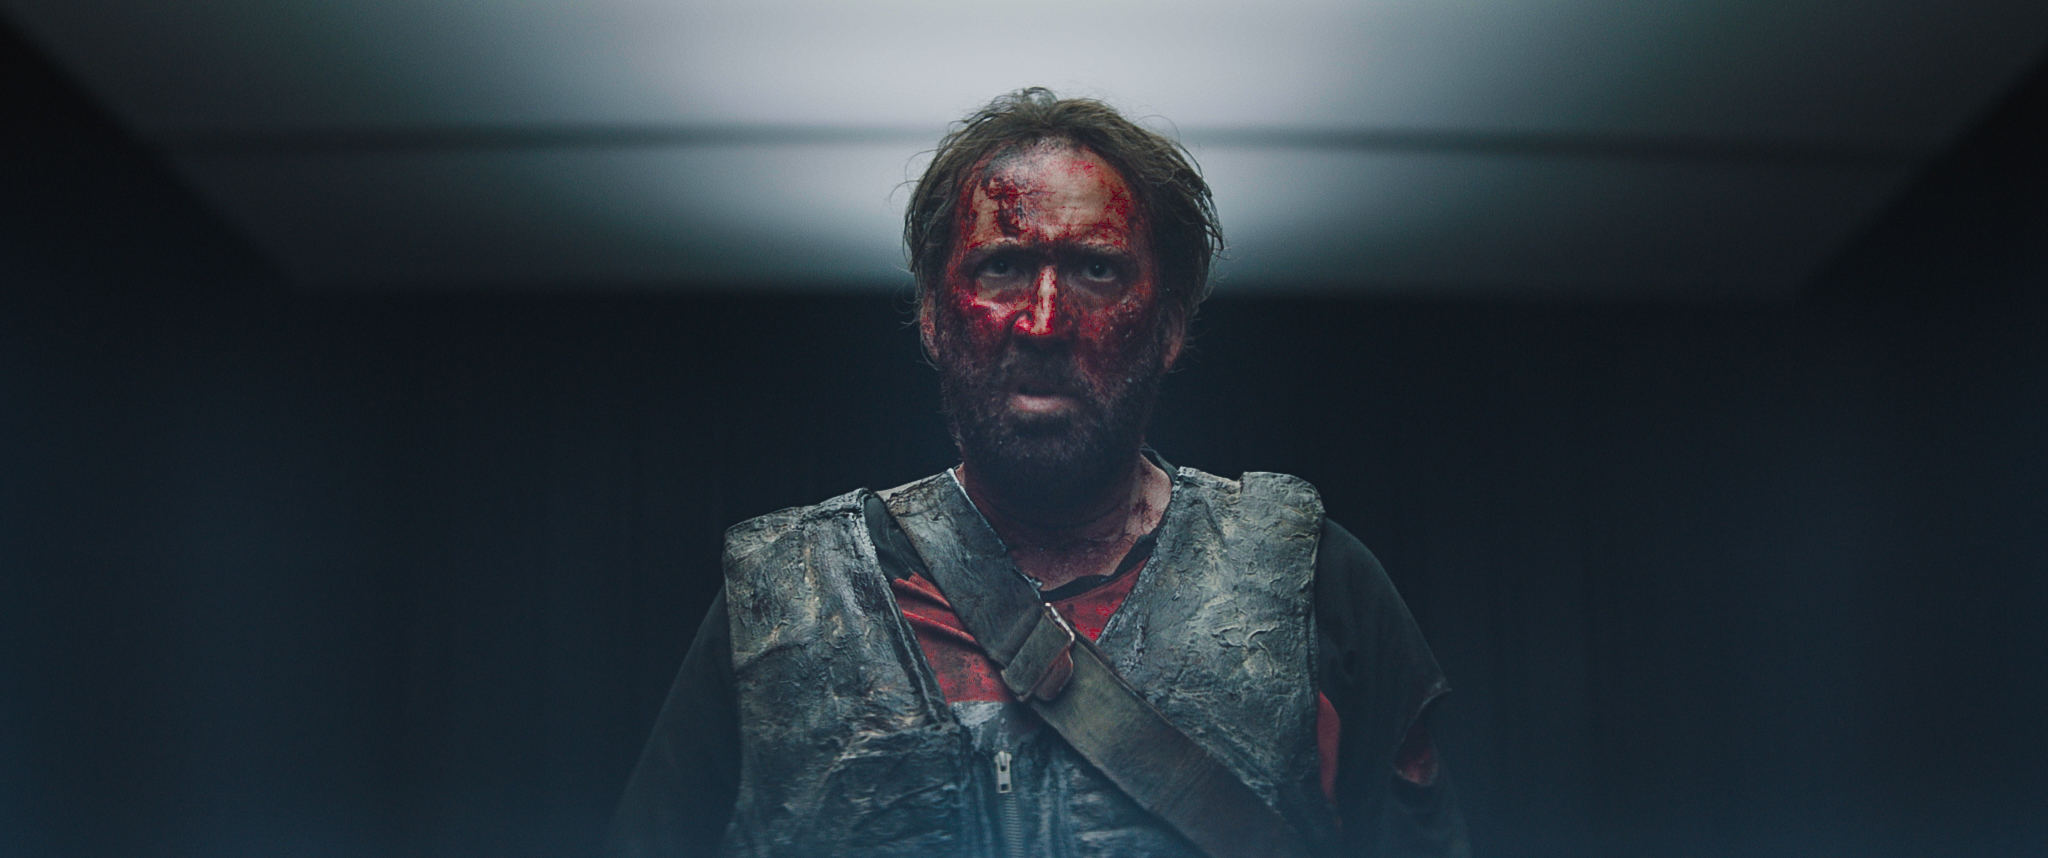 """Nicolas Cage  as Red in the action, thriller film  """"MANDY""""  an   RLJE Films   release. Photo courtesy of  RLJE Films."""